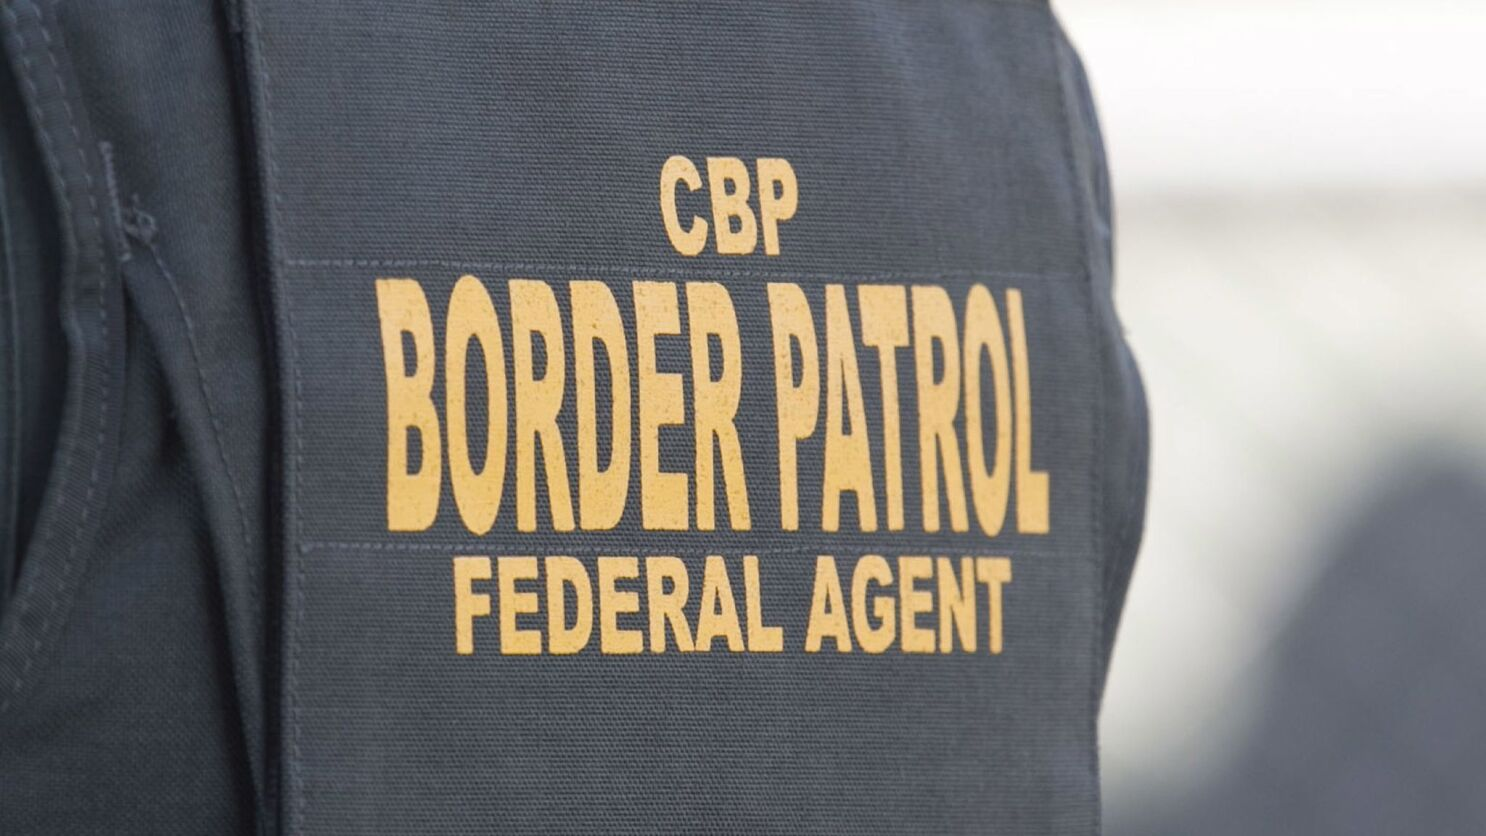 CBP holds migrants longer than it is supposed to, lawyer claims